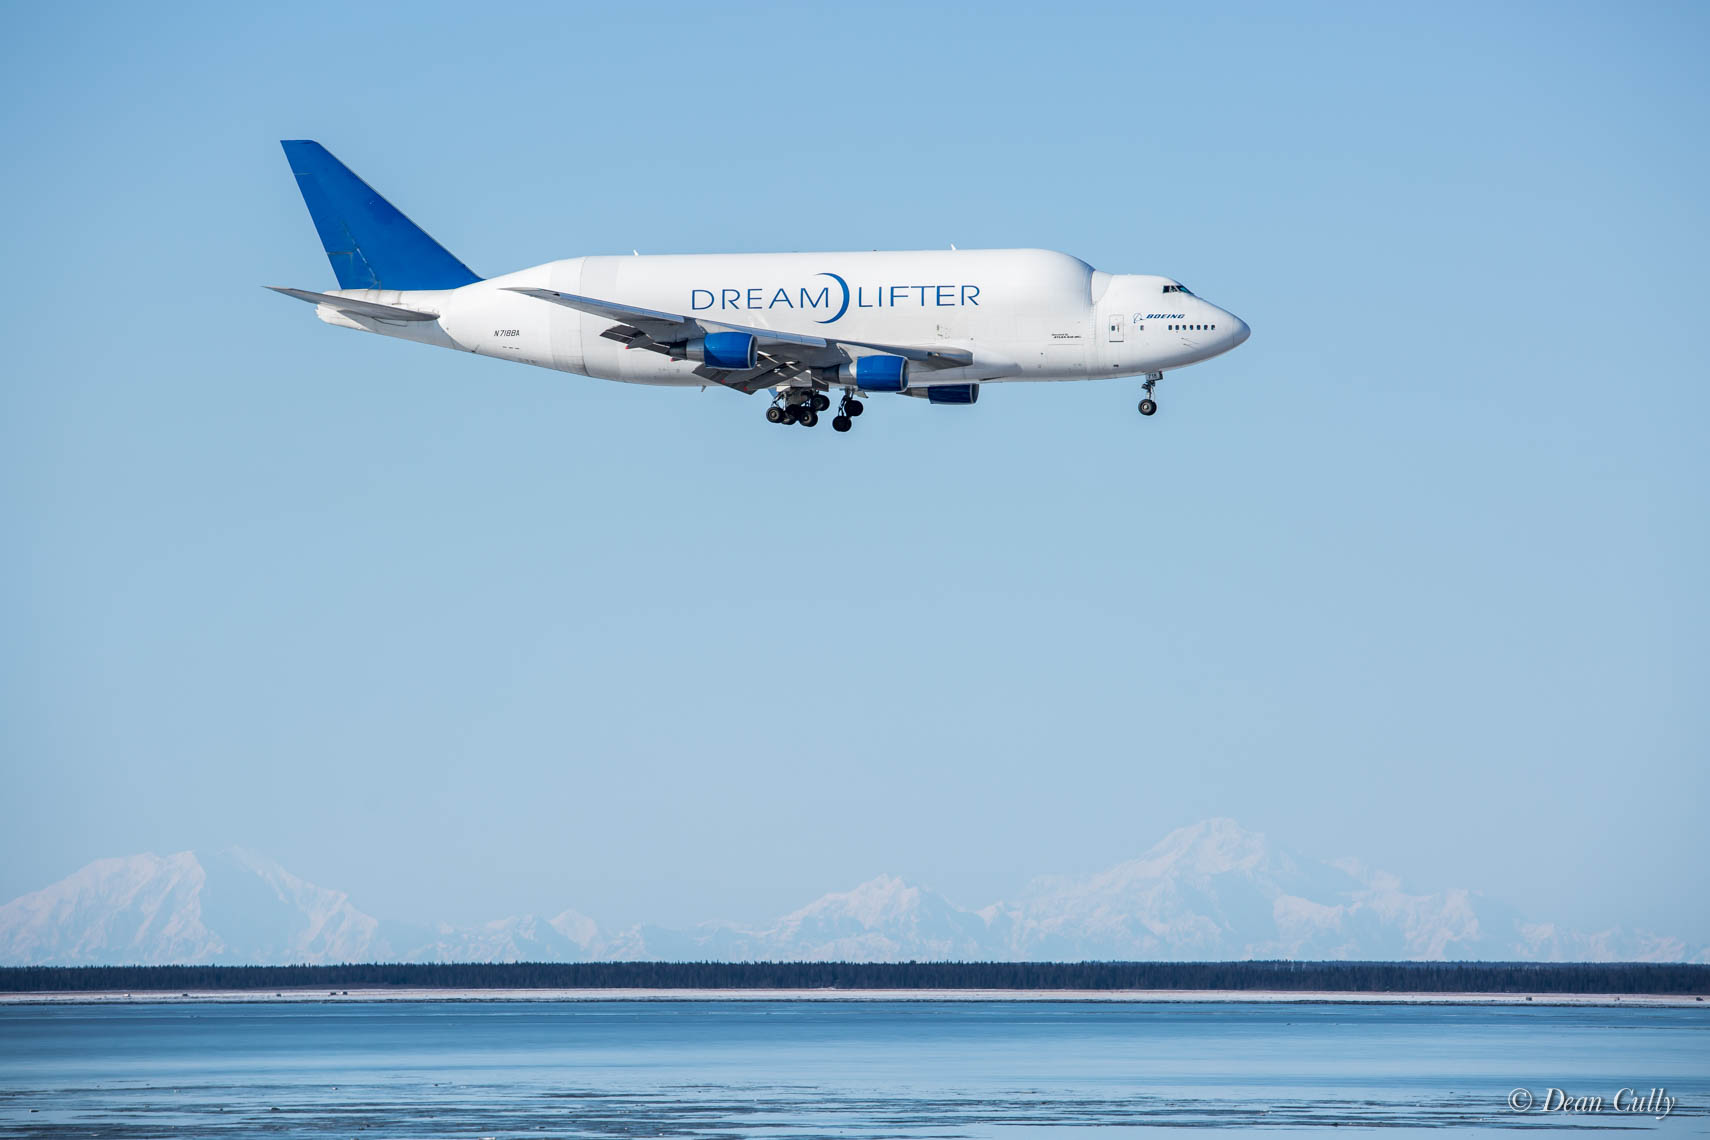 A Dreamlifter Arrives